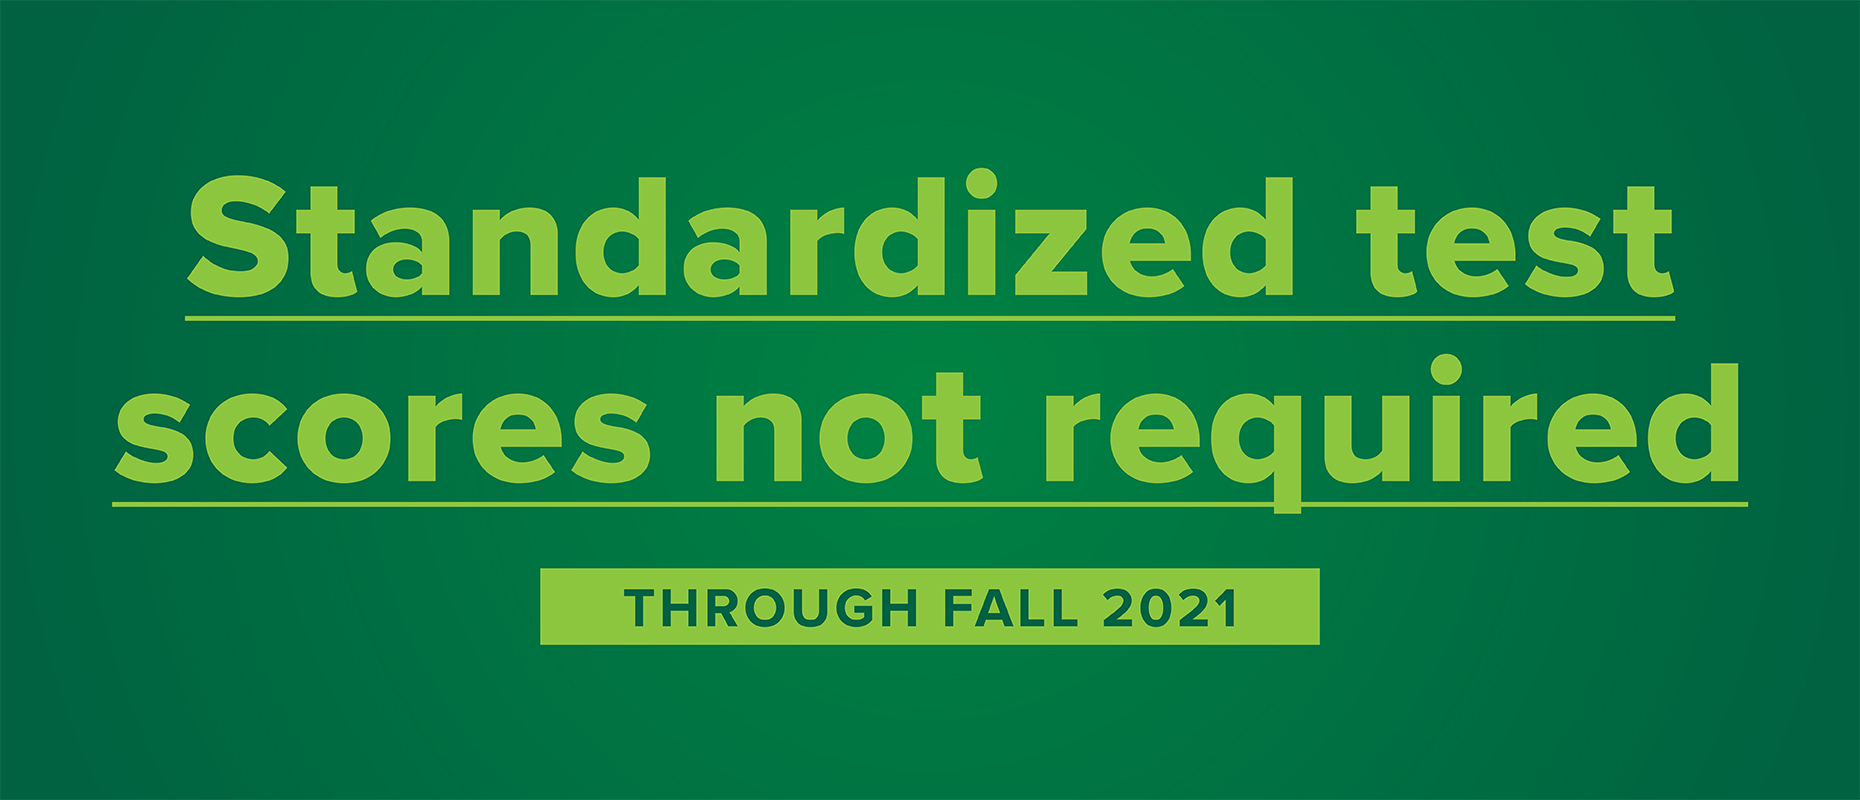 Standardized test scores not required through fall 2021